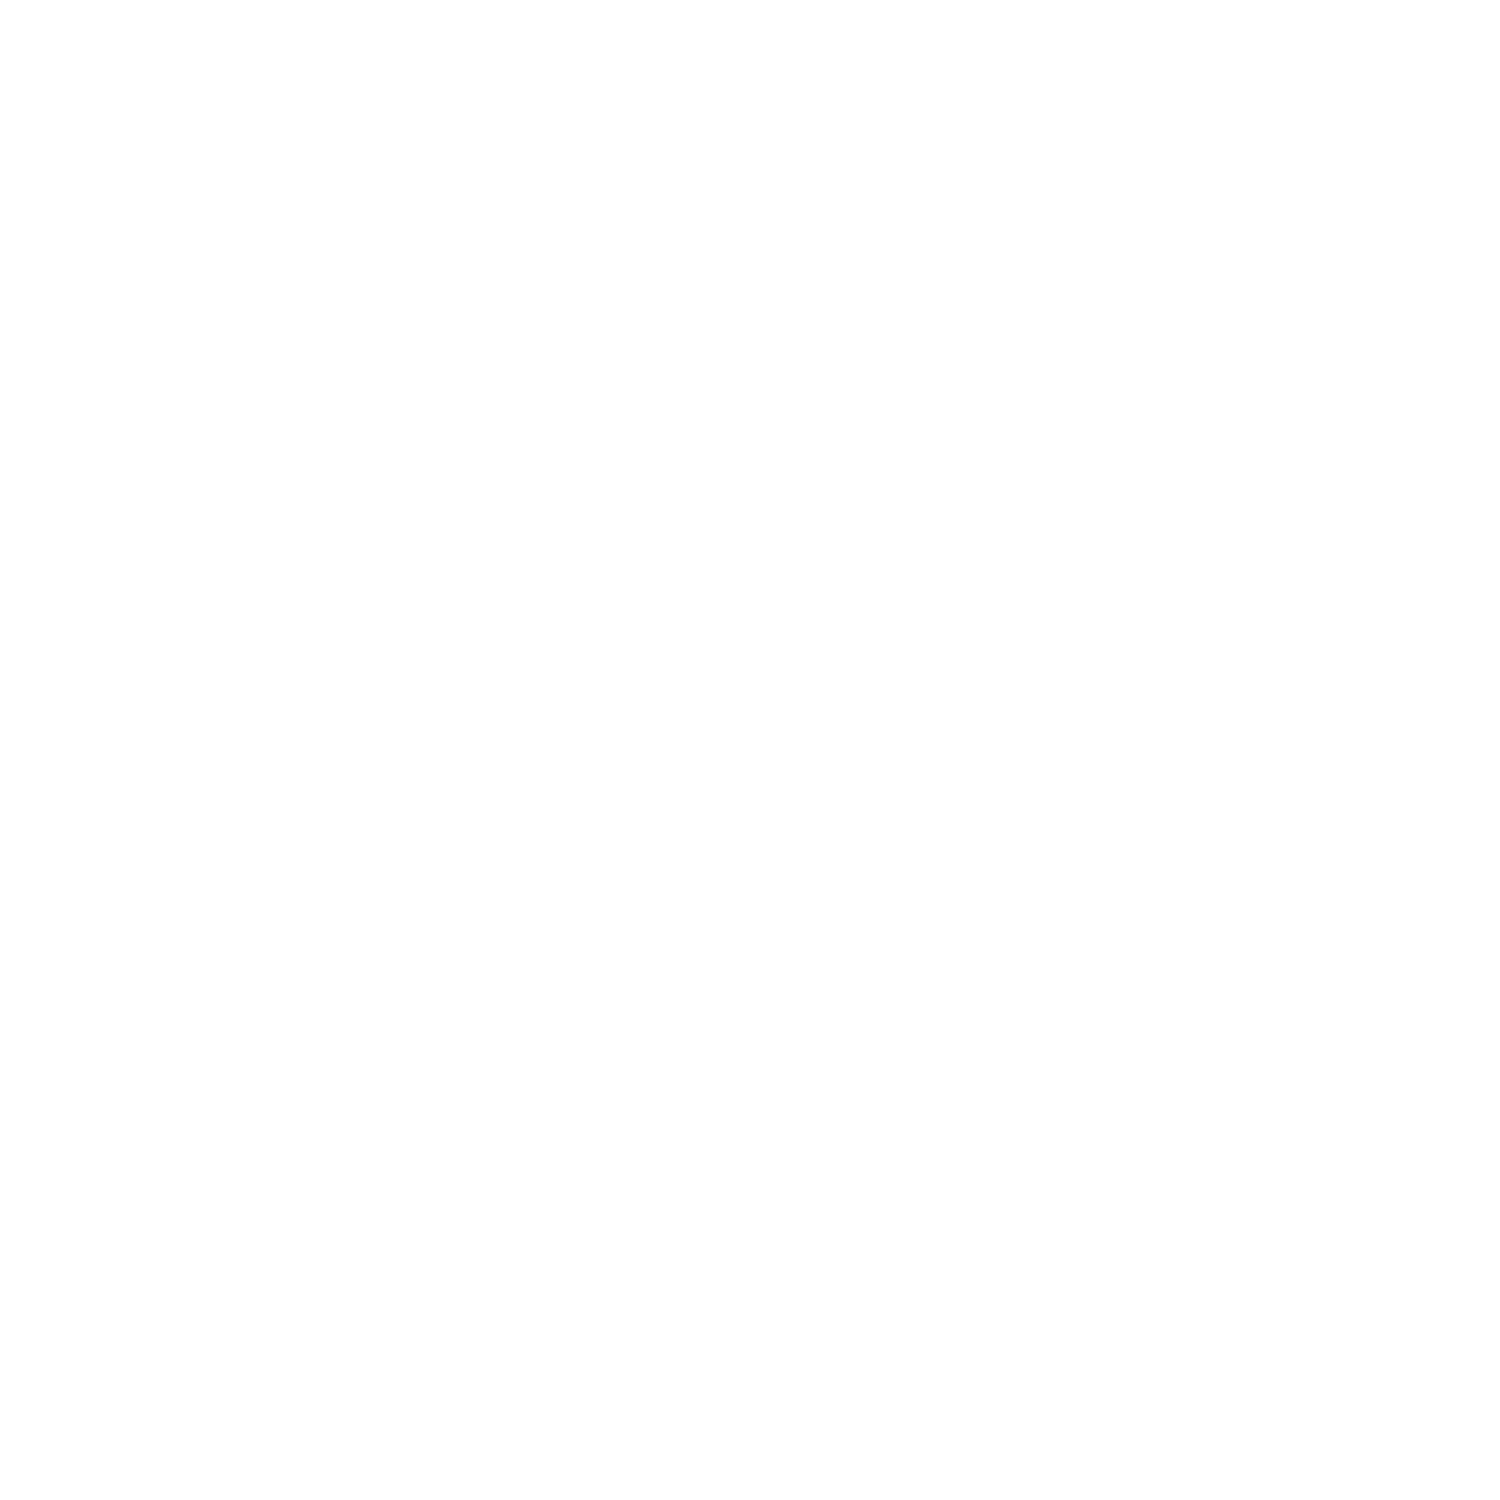 Cody Young Photography